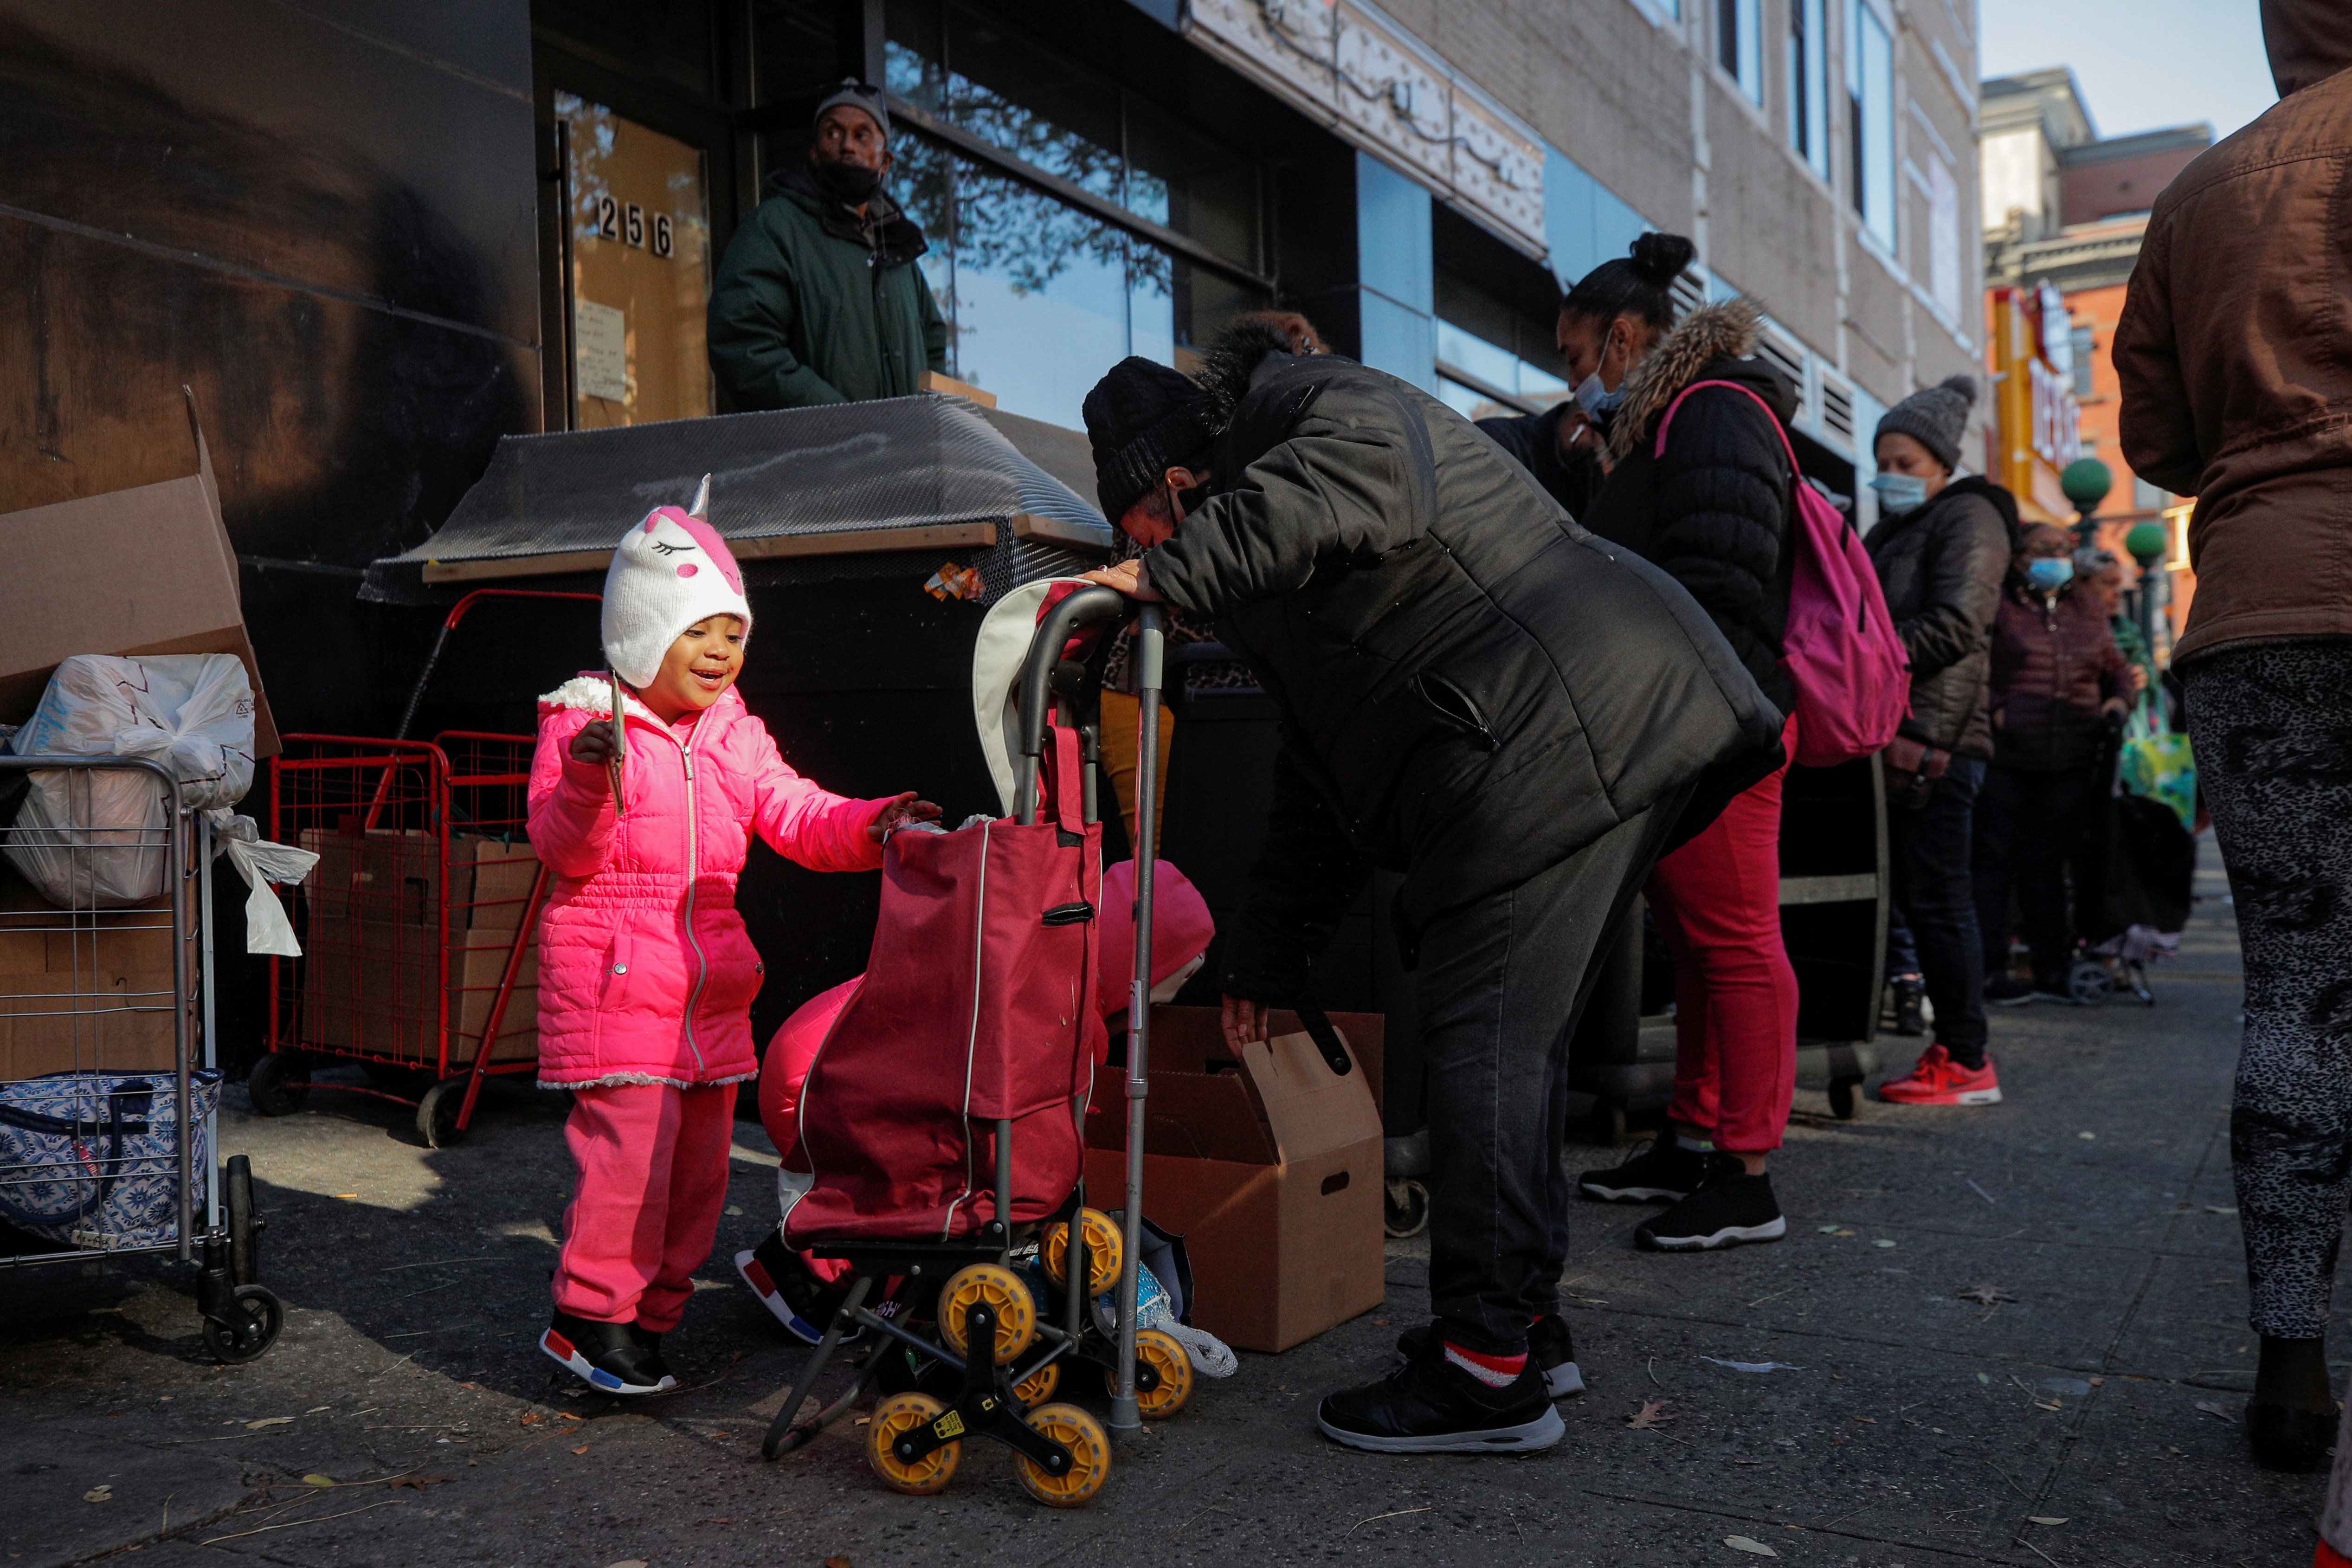 A child reacts as she helps to load a cart after receiving a holiday box of food from the Food Bank For New York City ahead of the Thanksgiving holiday, as the global outbreak of the coronavirus disease (COVID-19) continues, in the Harlem neighborhood of New York, U.S., November 16, 2020.  REUTERS/Brendan McDermid